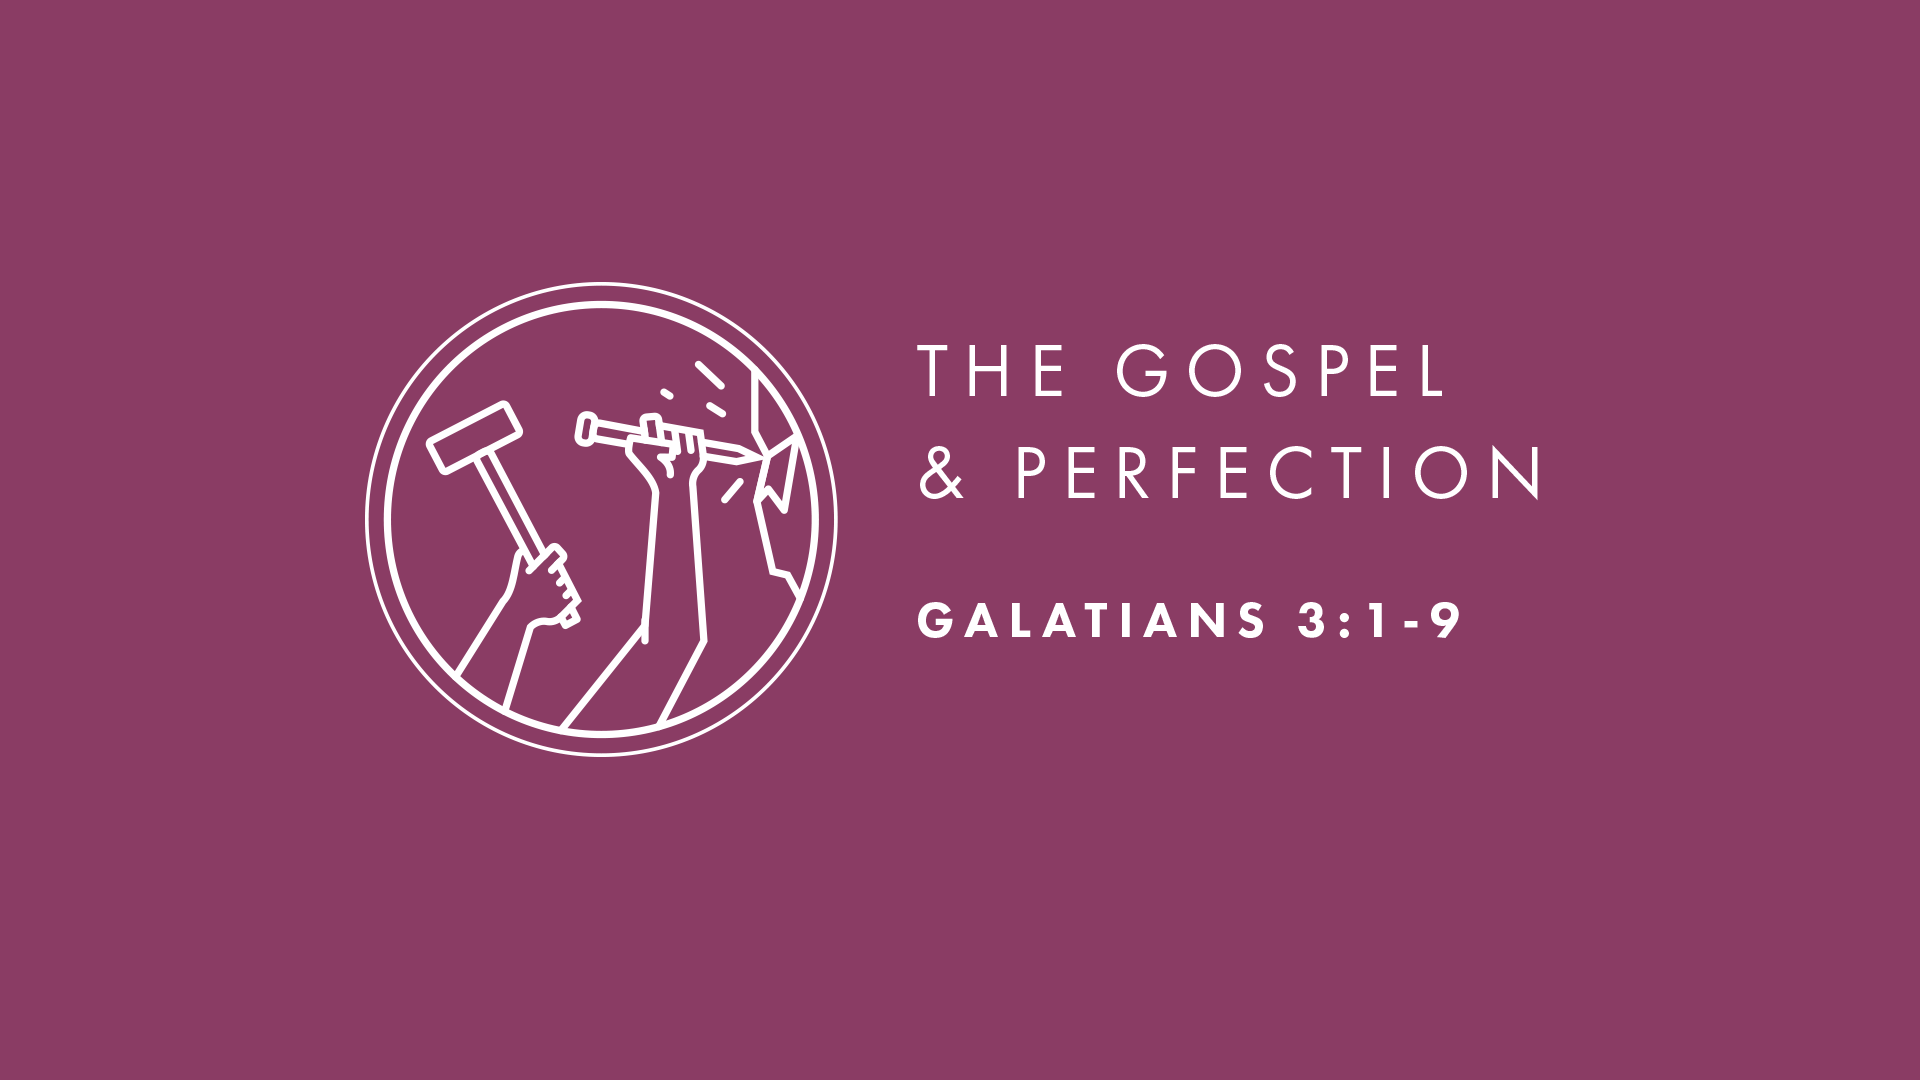 The Gospel and Perfection